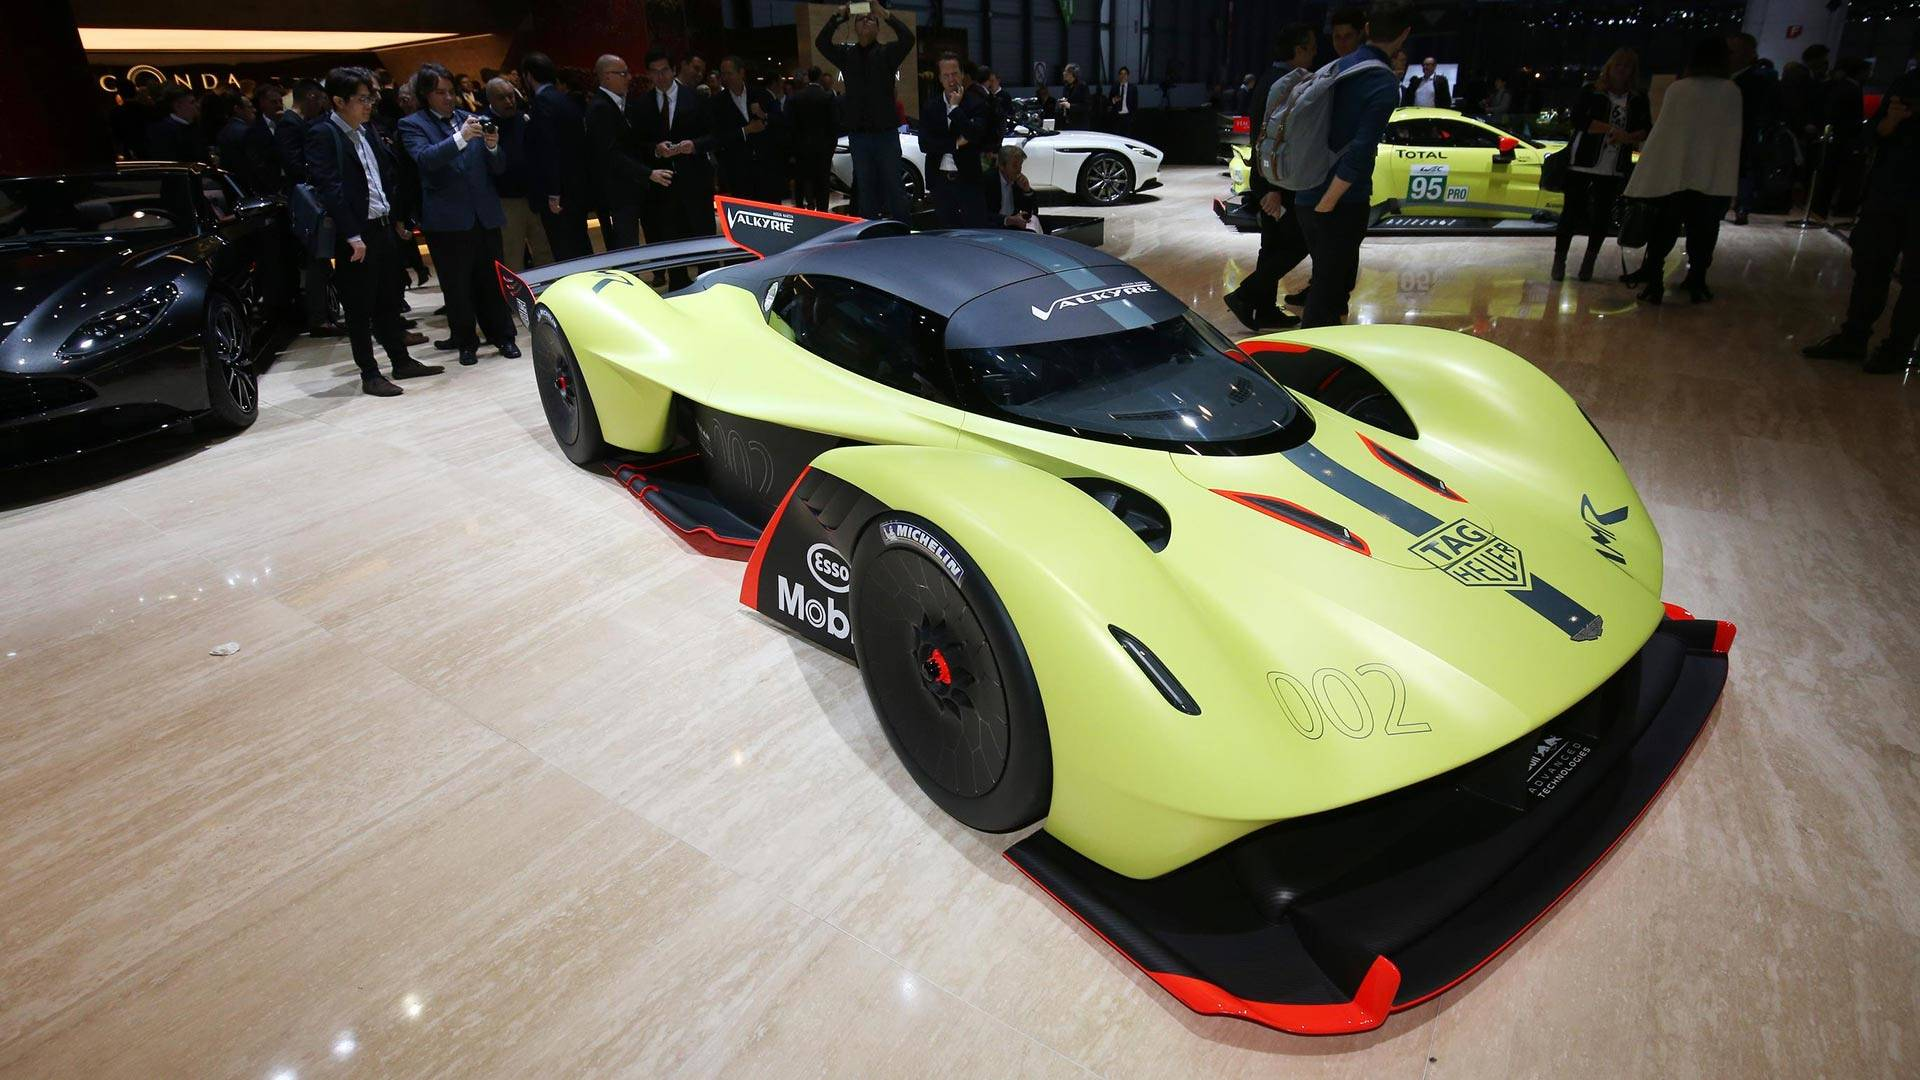 Aston Martin Valkyrie AMR Pro Packs HP Of Hybrid Fury - The car pro show price